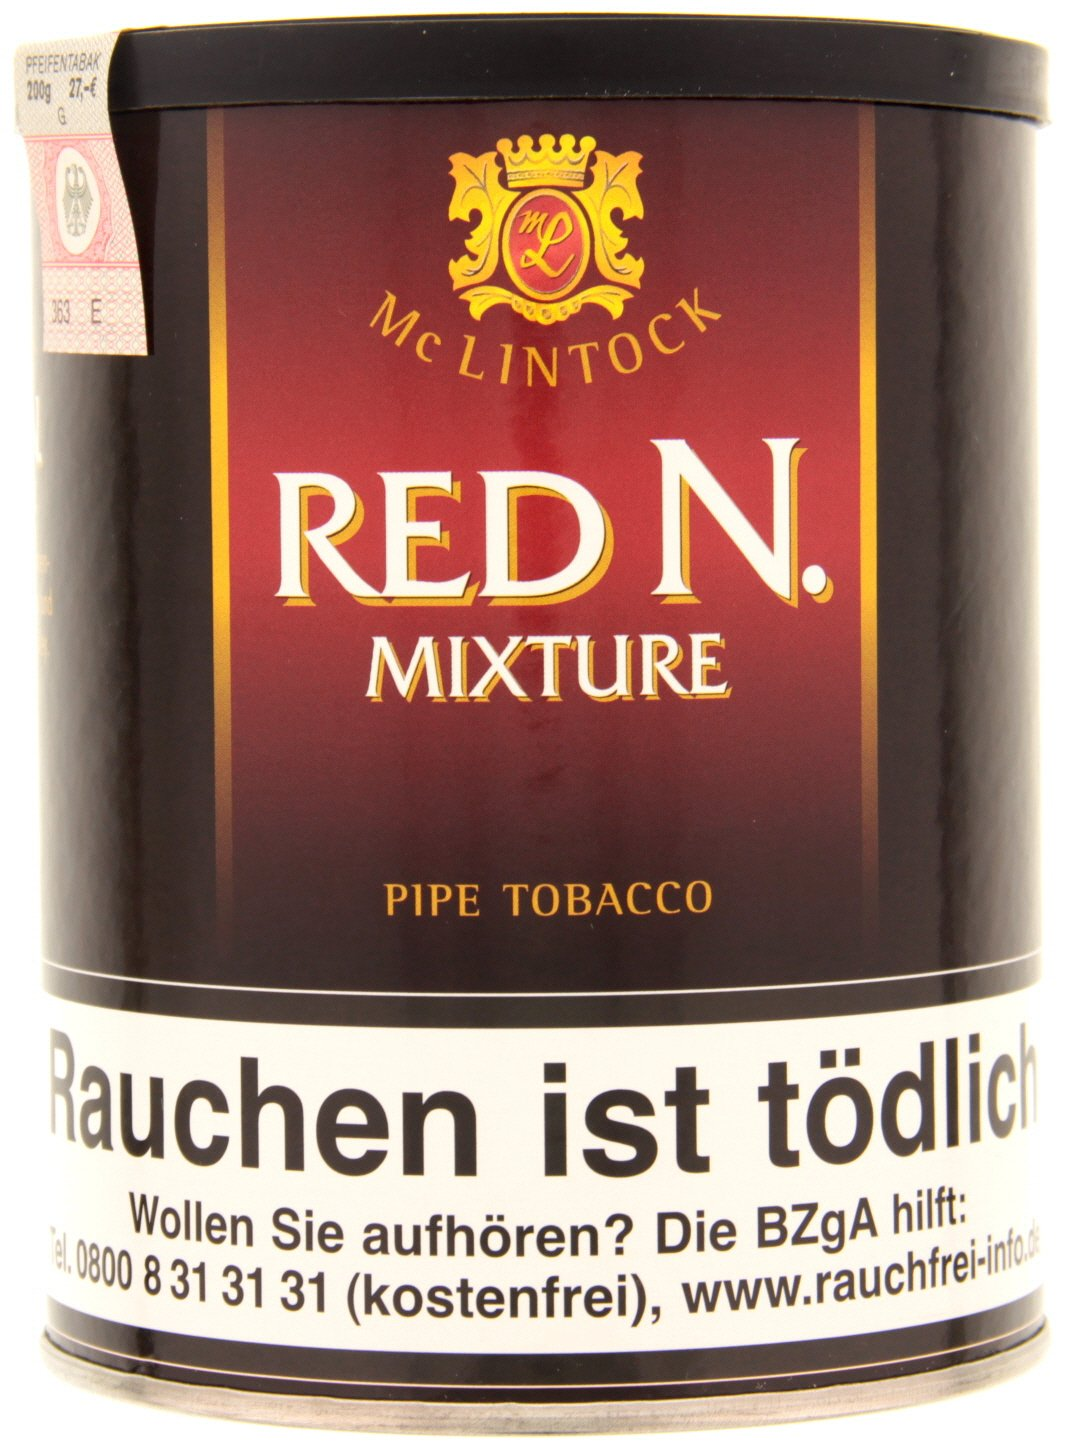 Mc Lintock Red N. (ehemals Rednut) 200g